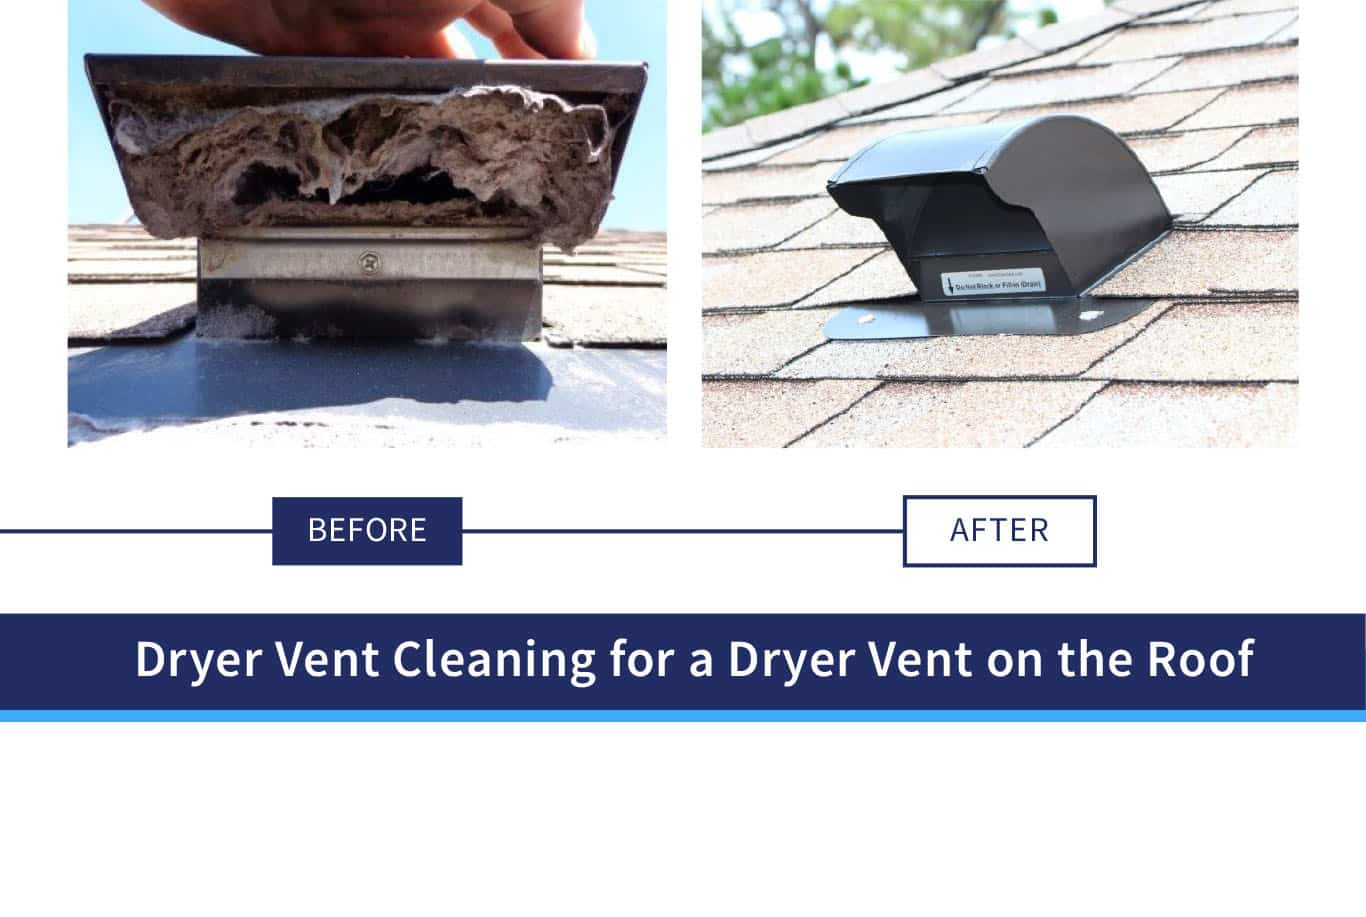 Dryer Vent Cleaning for a Dryer Vent on the Roof